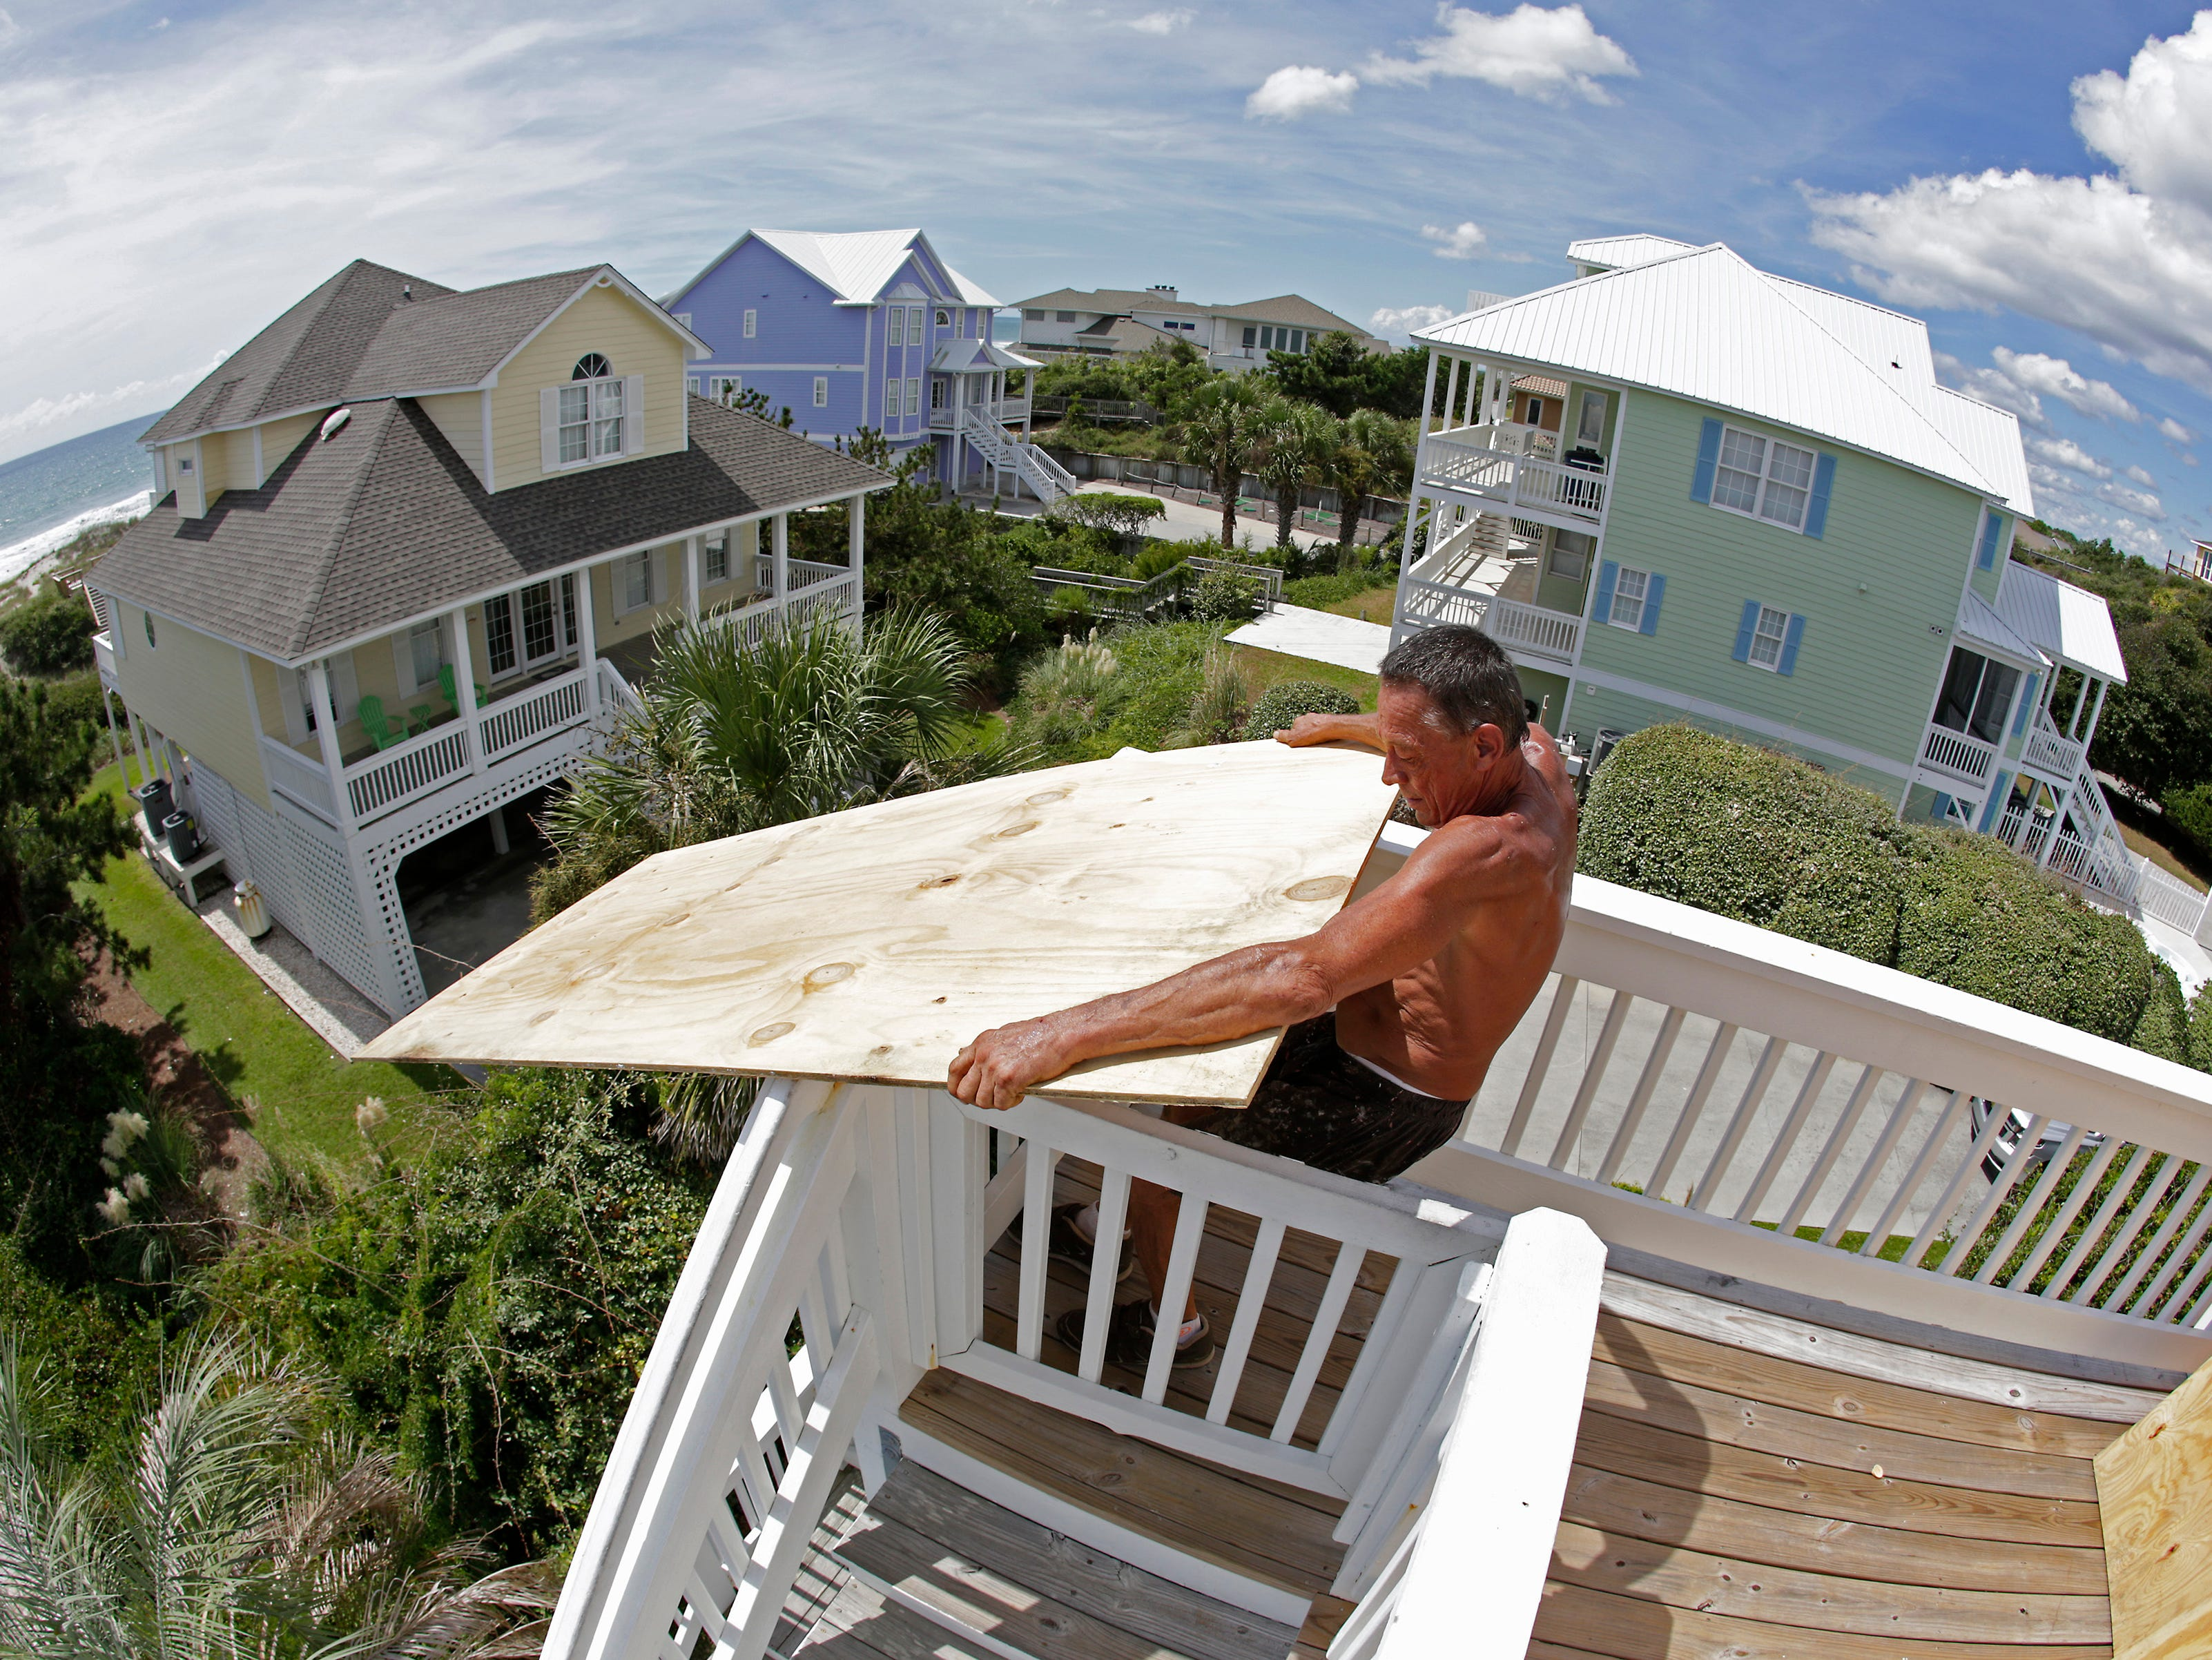 Tim Avery pulls boards to the third story of a home as he prepares for Hurricane Florence at a home in Emerald Isle N.C., Wednesday, Sept. 12, 2018.